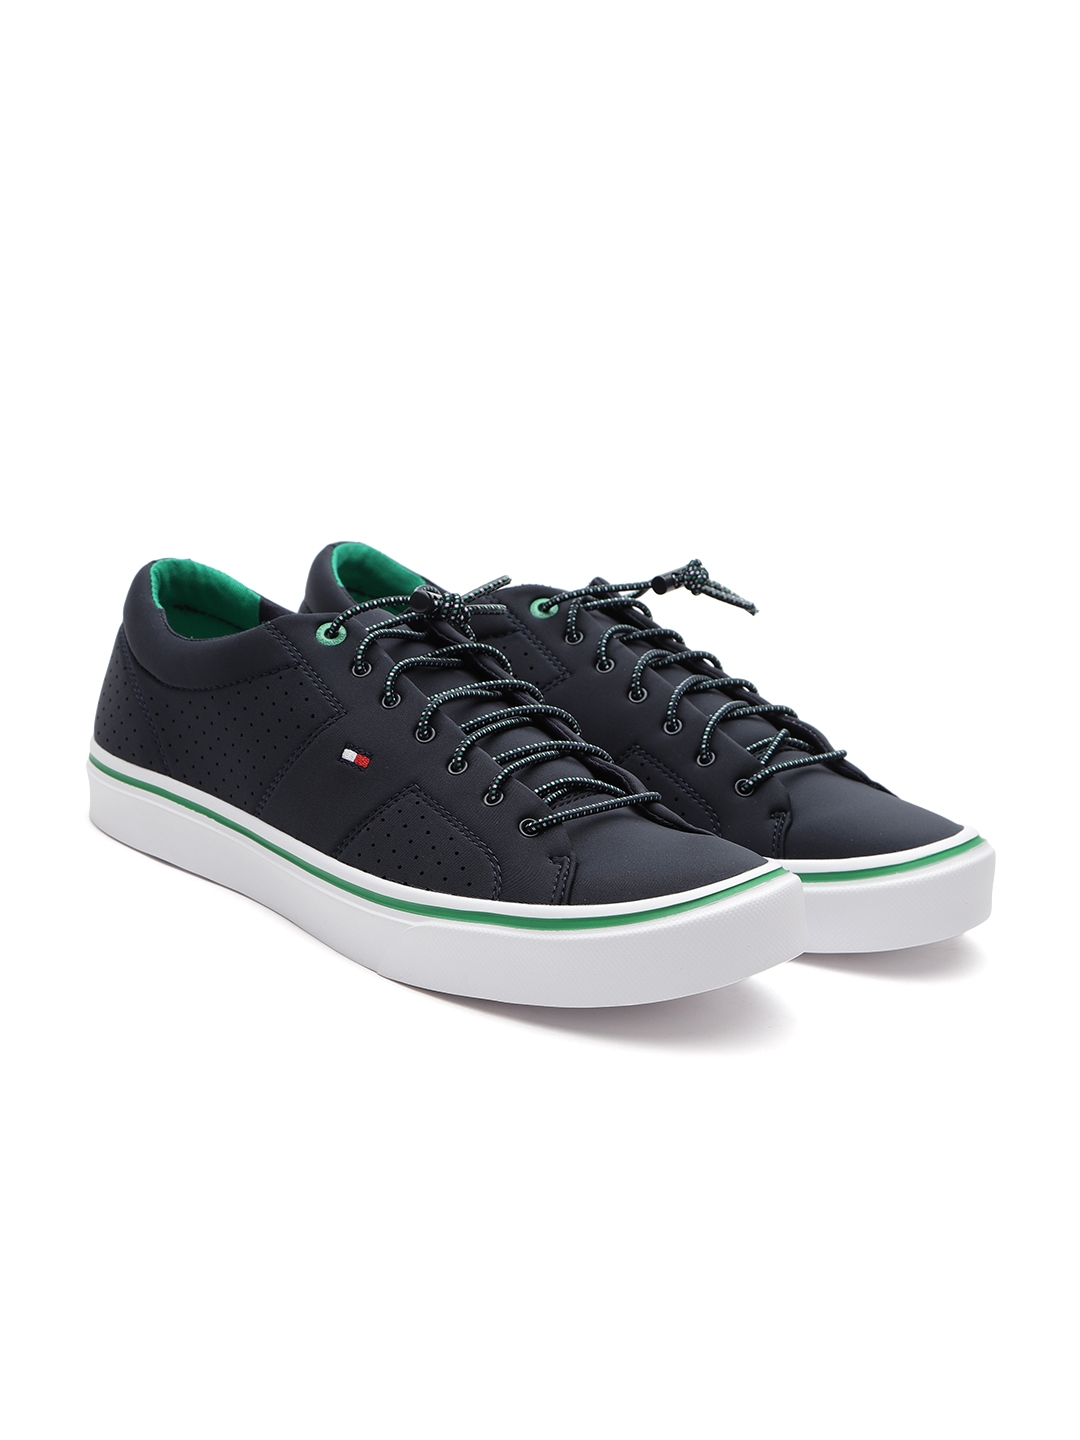 cbbedd719b0680 Buy Tommy Hilfiger Men Navy Sneakers - Casual Shoes for Men 5267719 ...